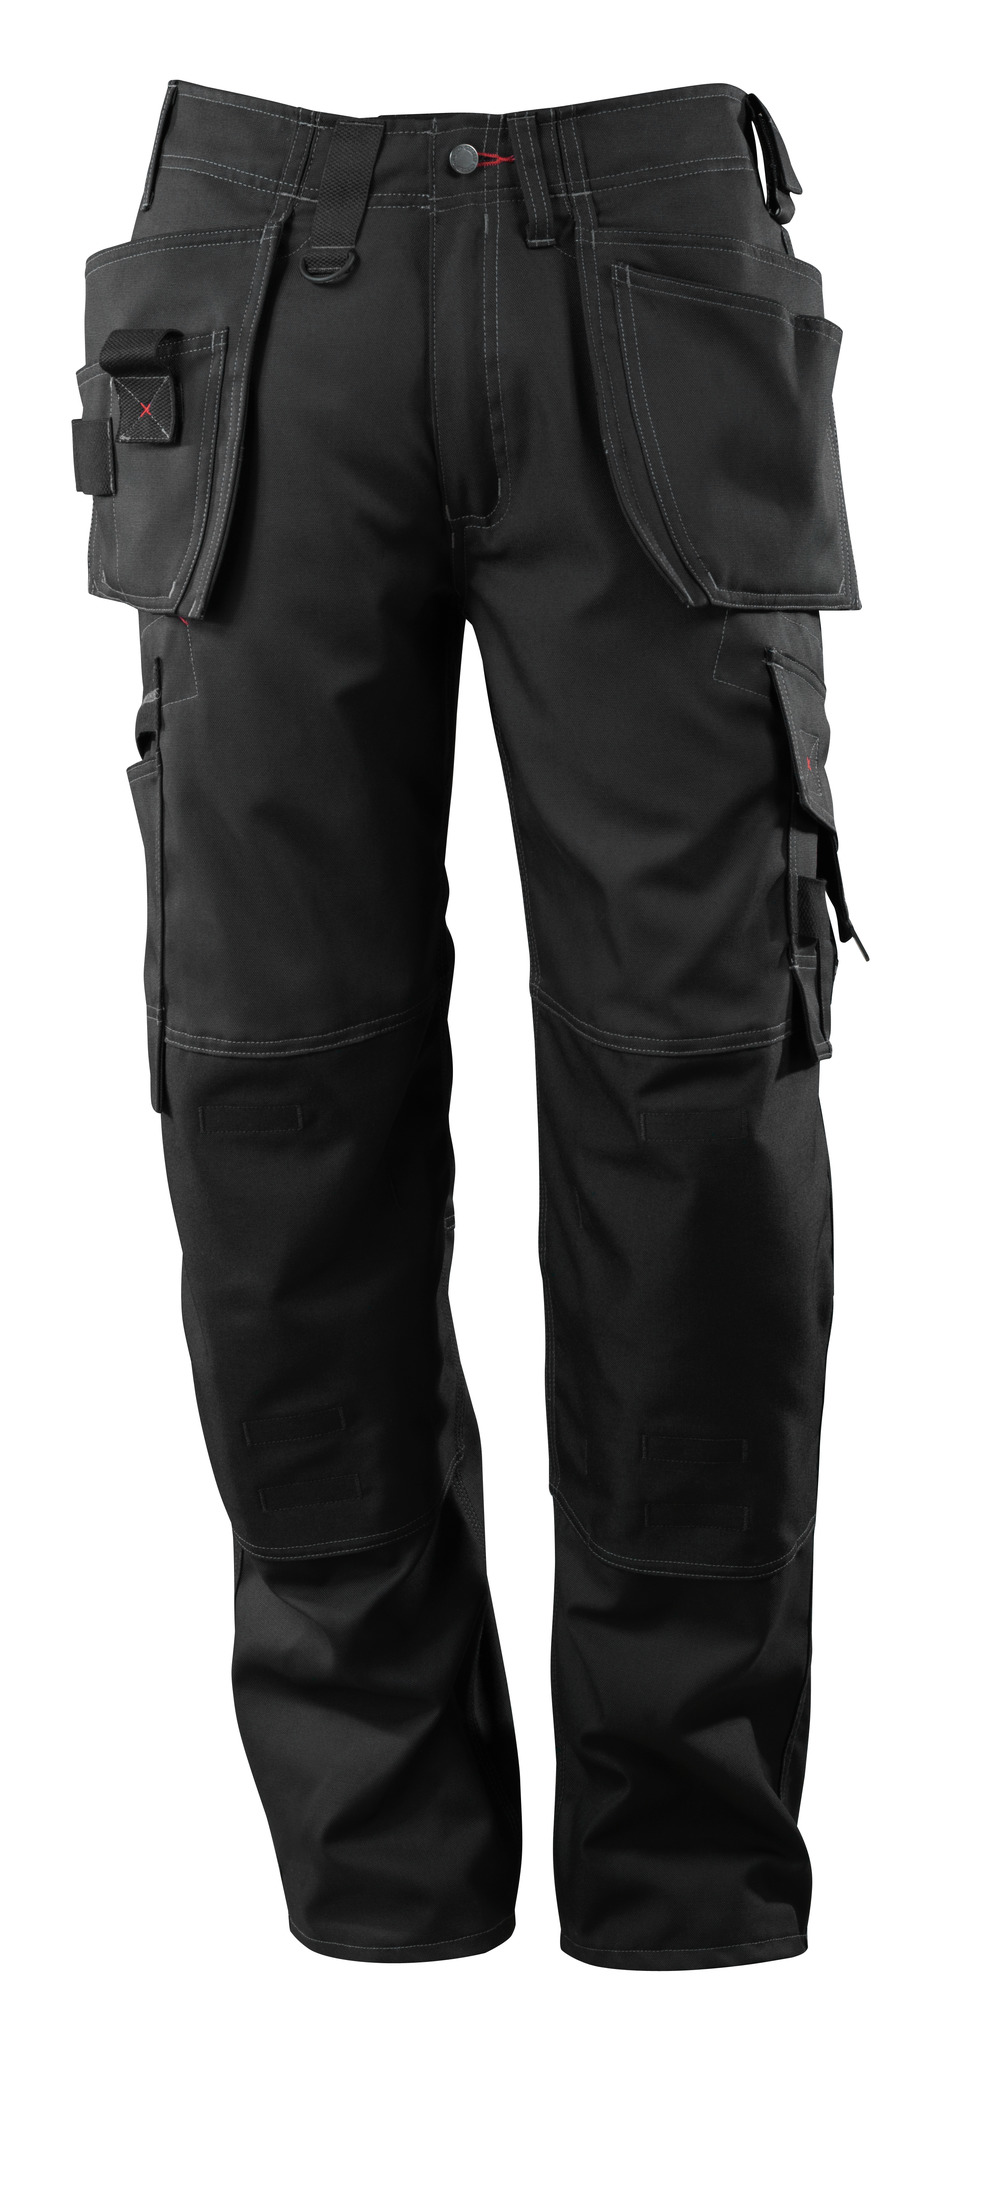 07379-154-09 Trousers with kneepad pockets and holster pockets - black